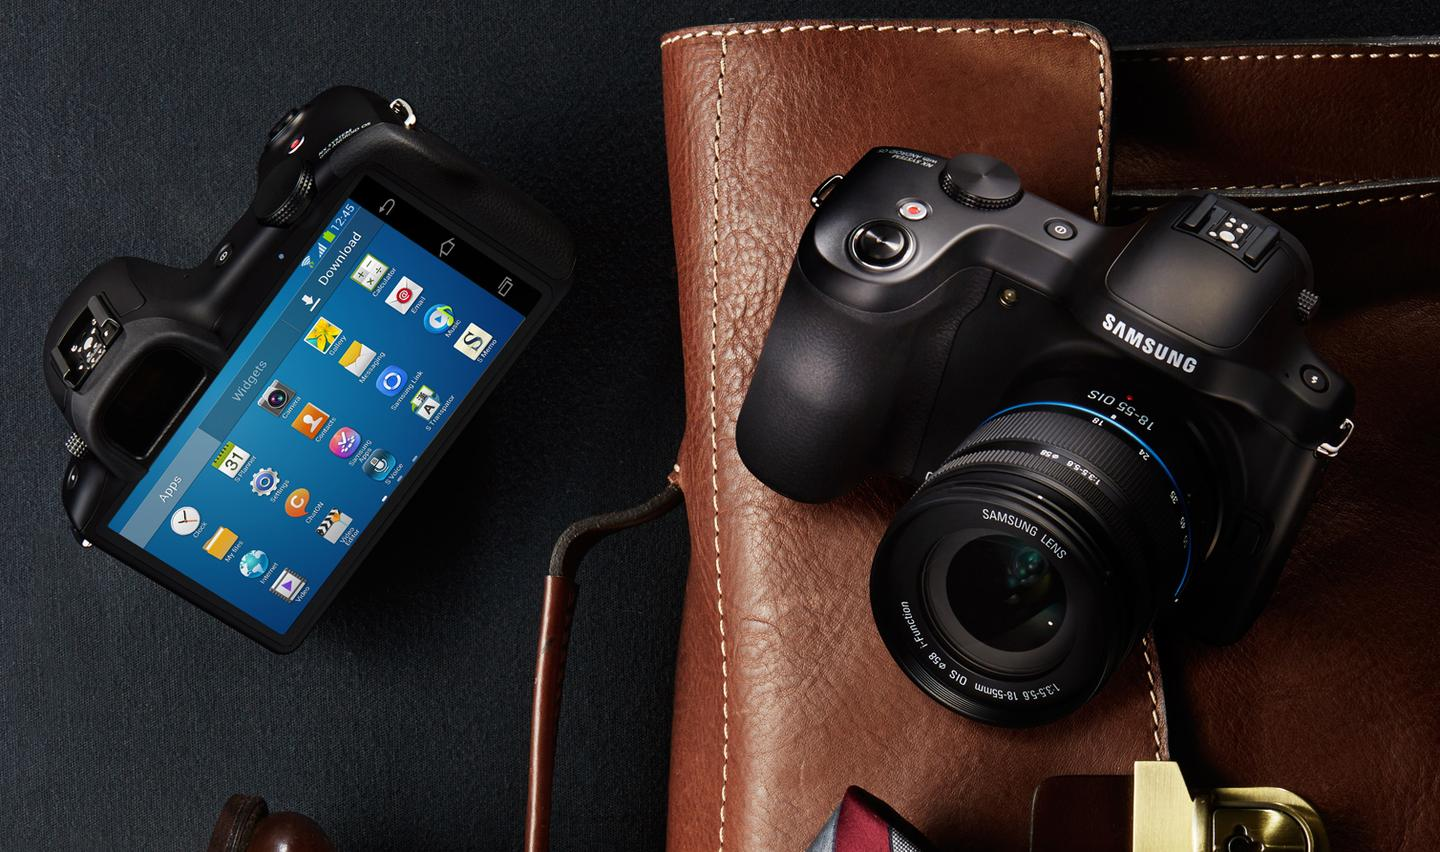 Samsung Galaxy NX brings Android to interchangeable lens cameras